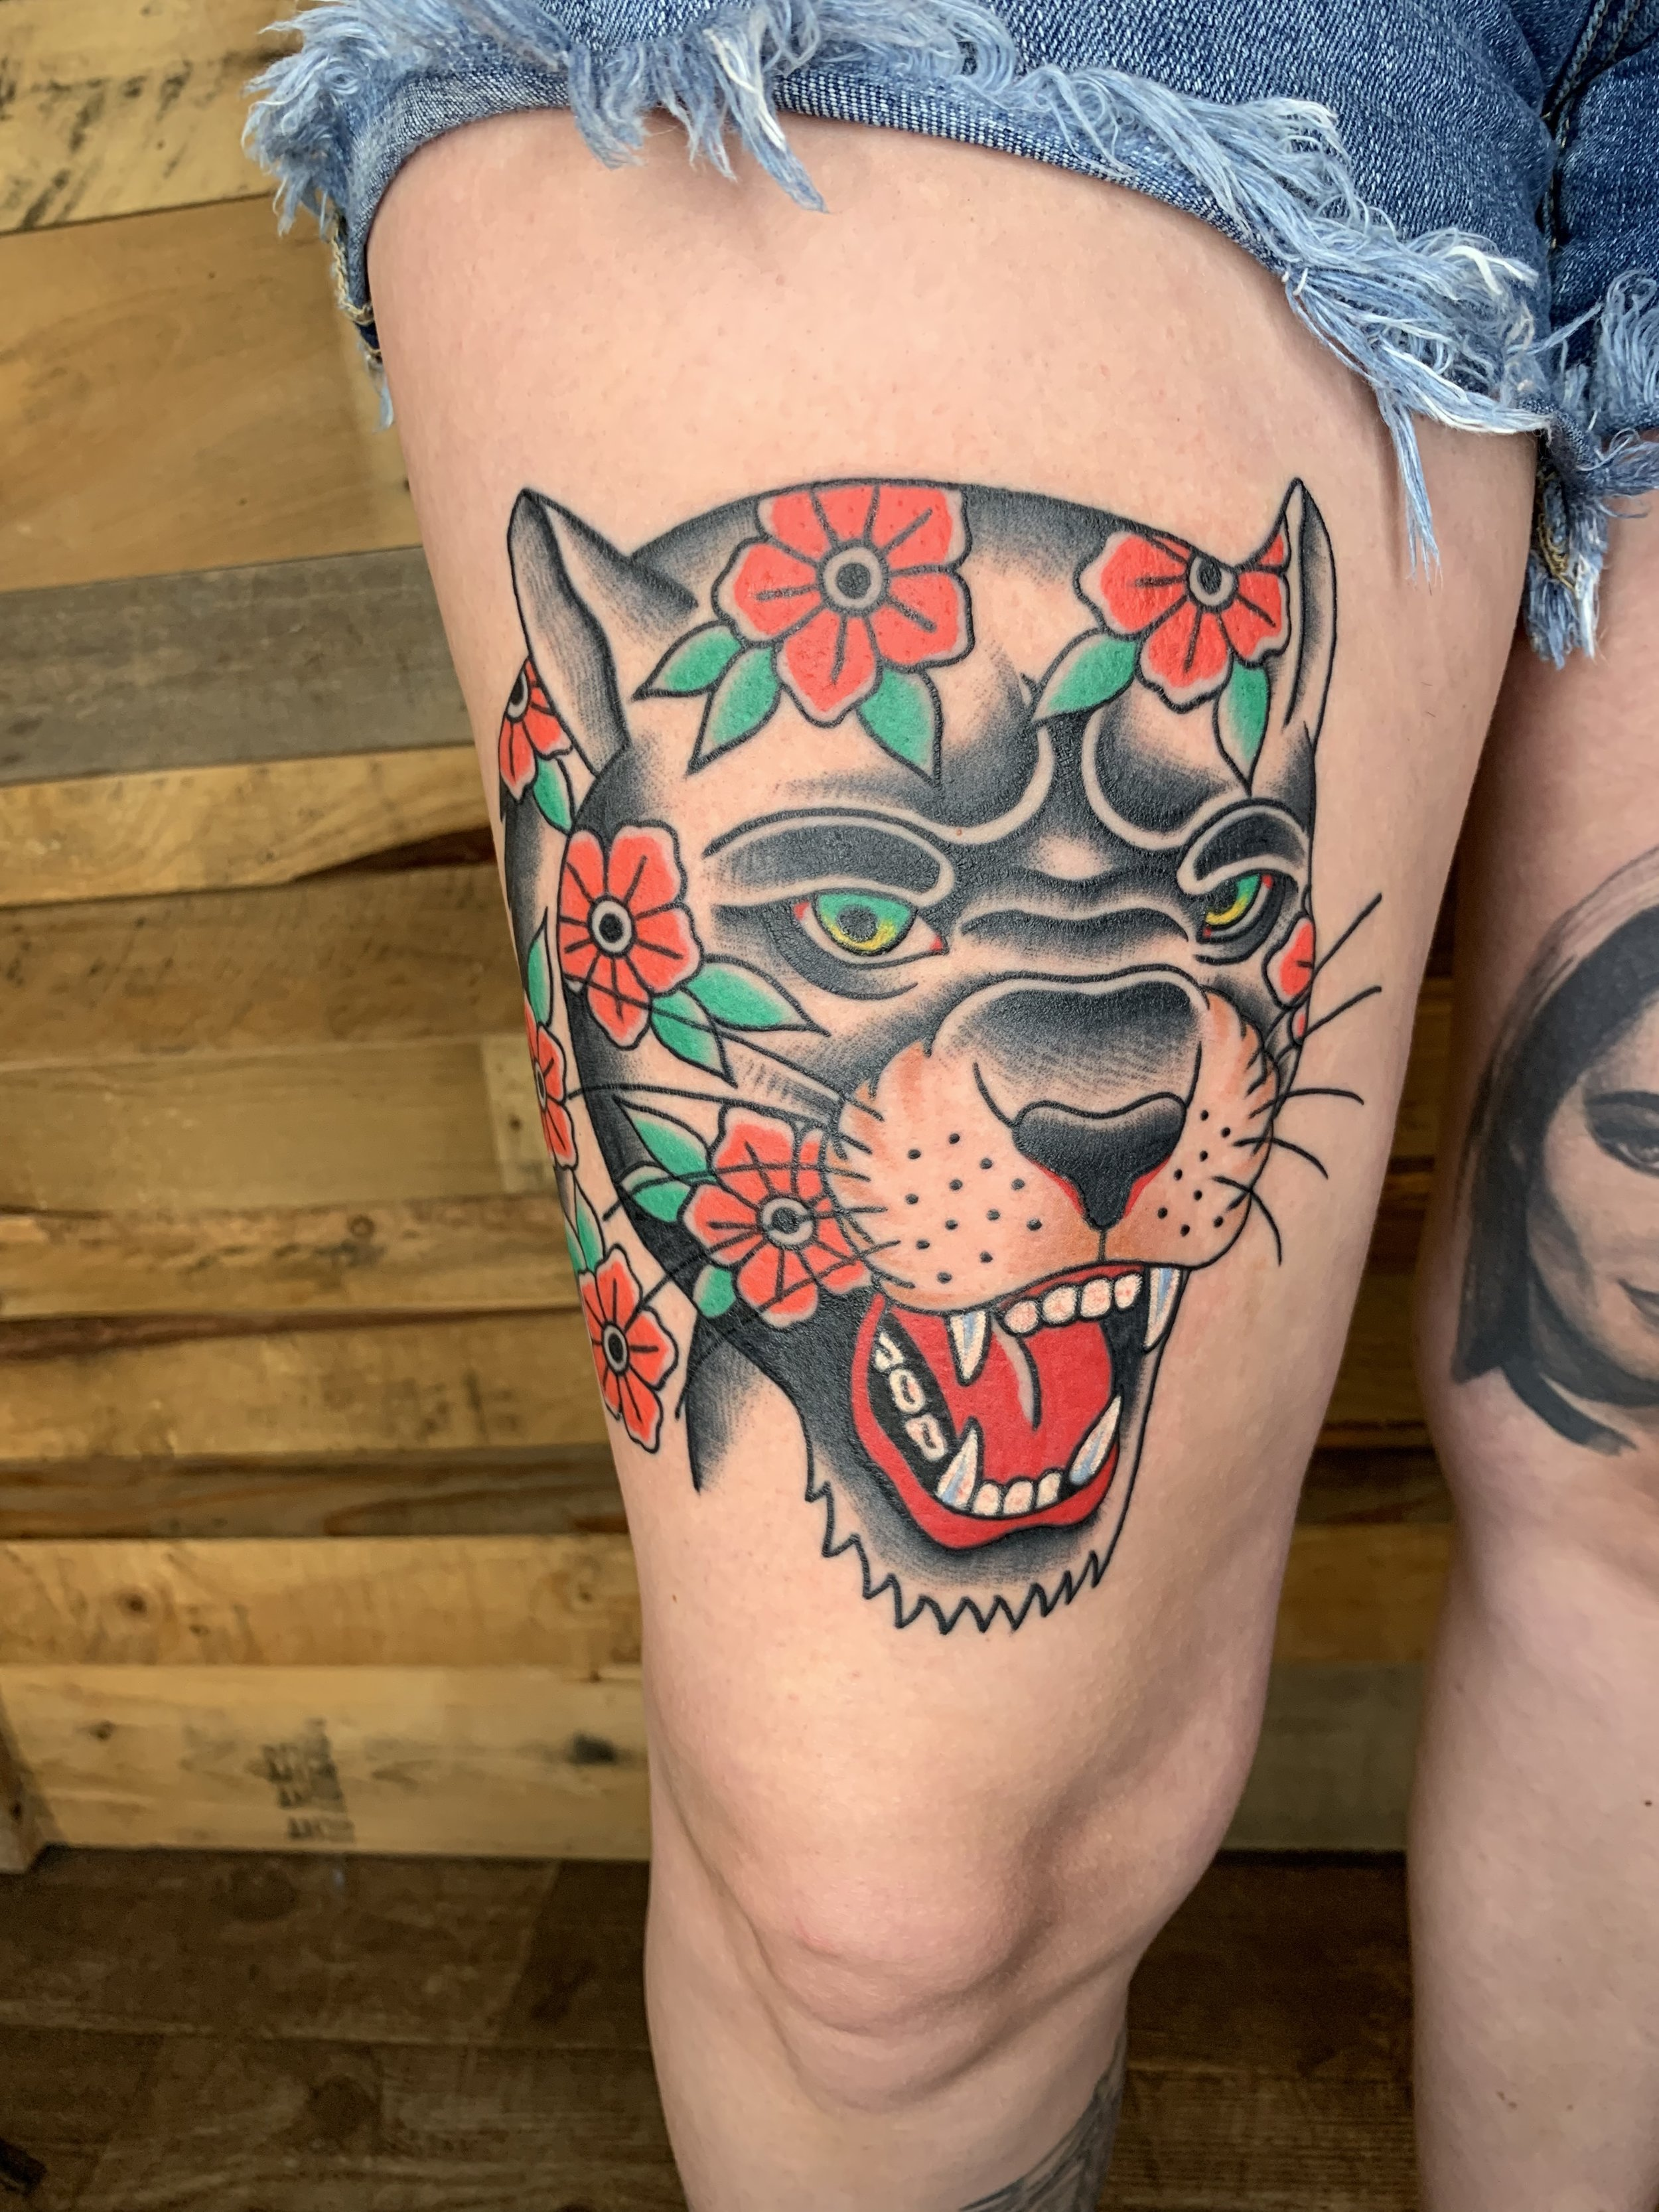 Maiden Voyage Tattoo : maiden, voyage, tattoo, Maiden, Voyage, Tattoo, Gallery, Collection